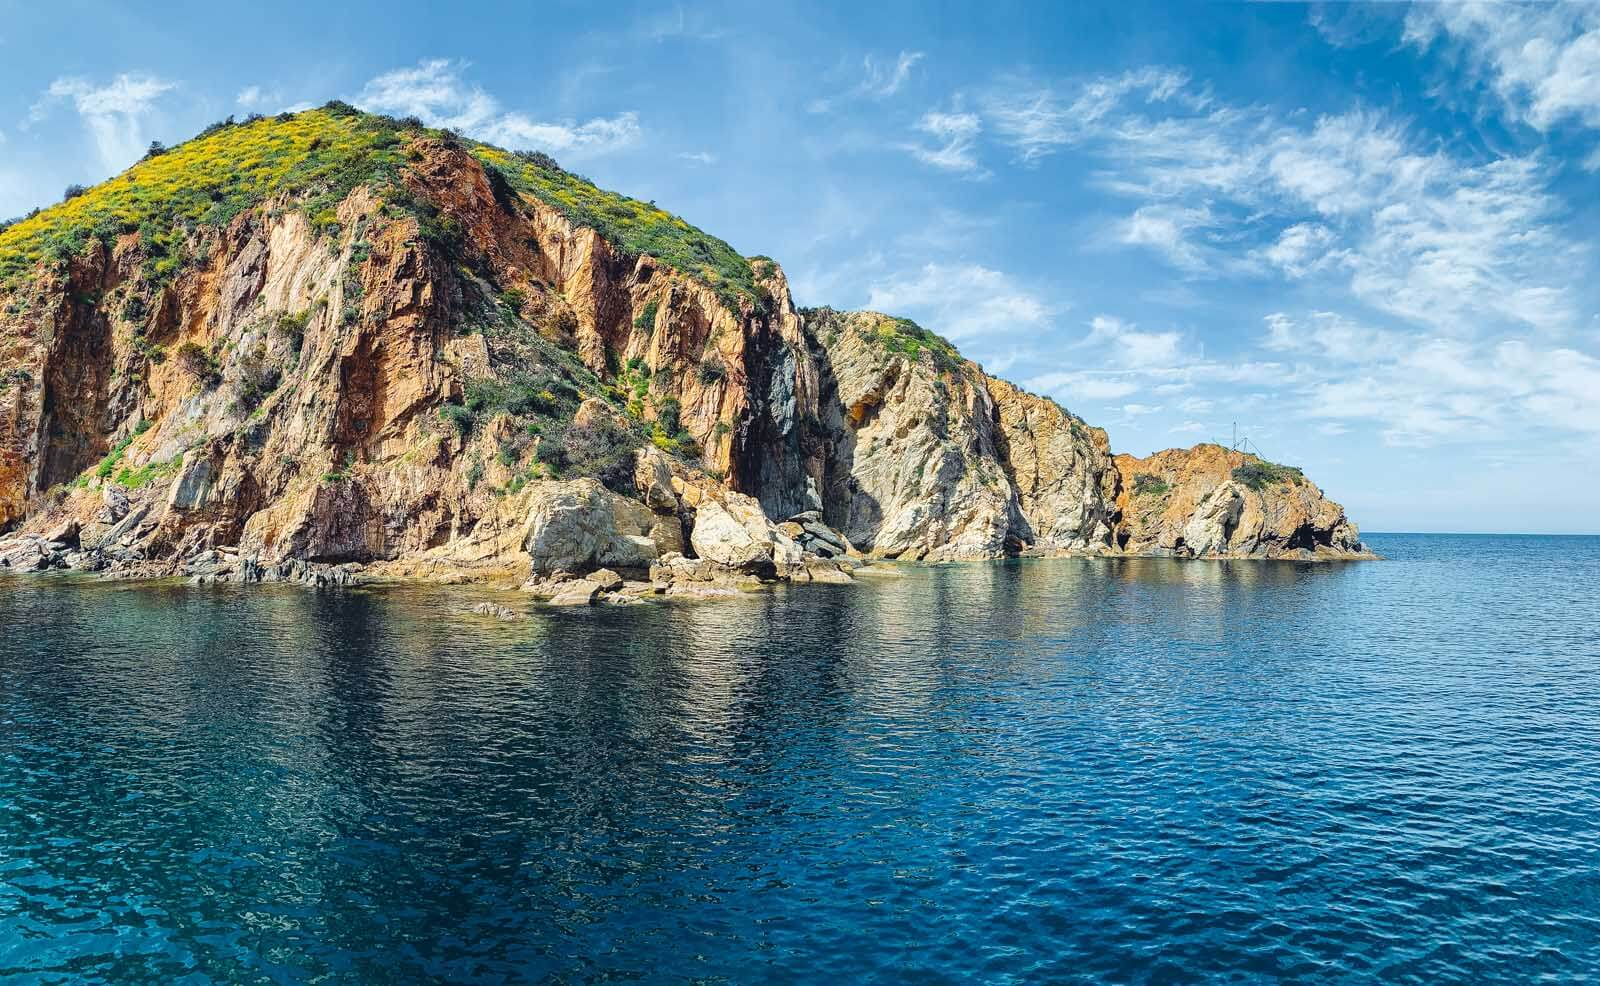 along the coastline of Catalina Island in California on a snorkeling excursion